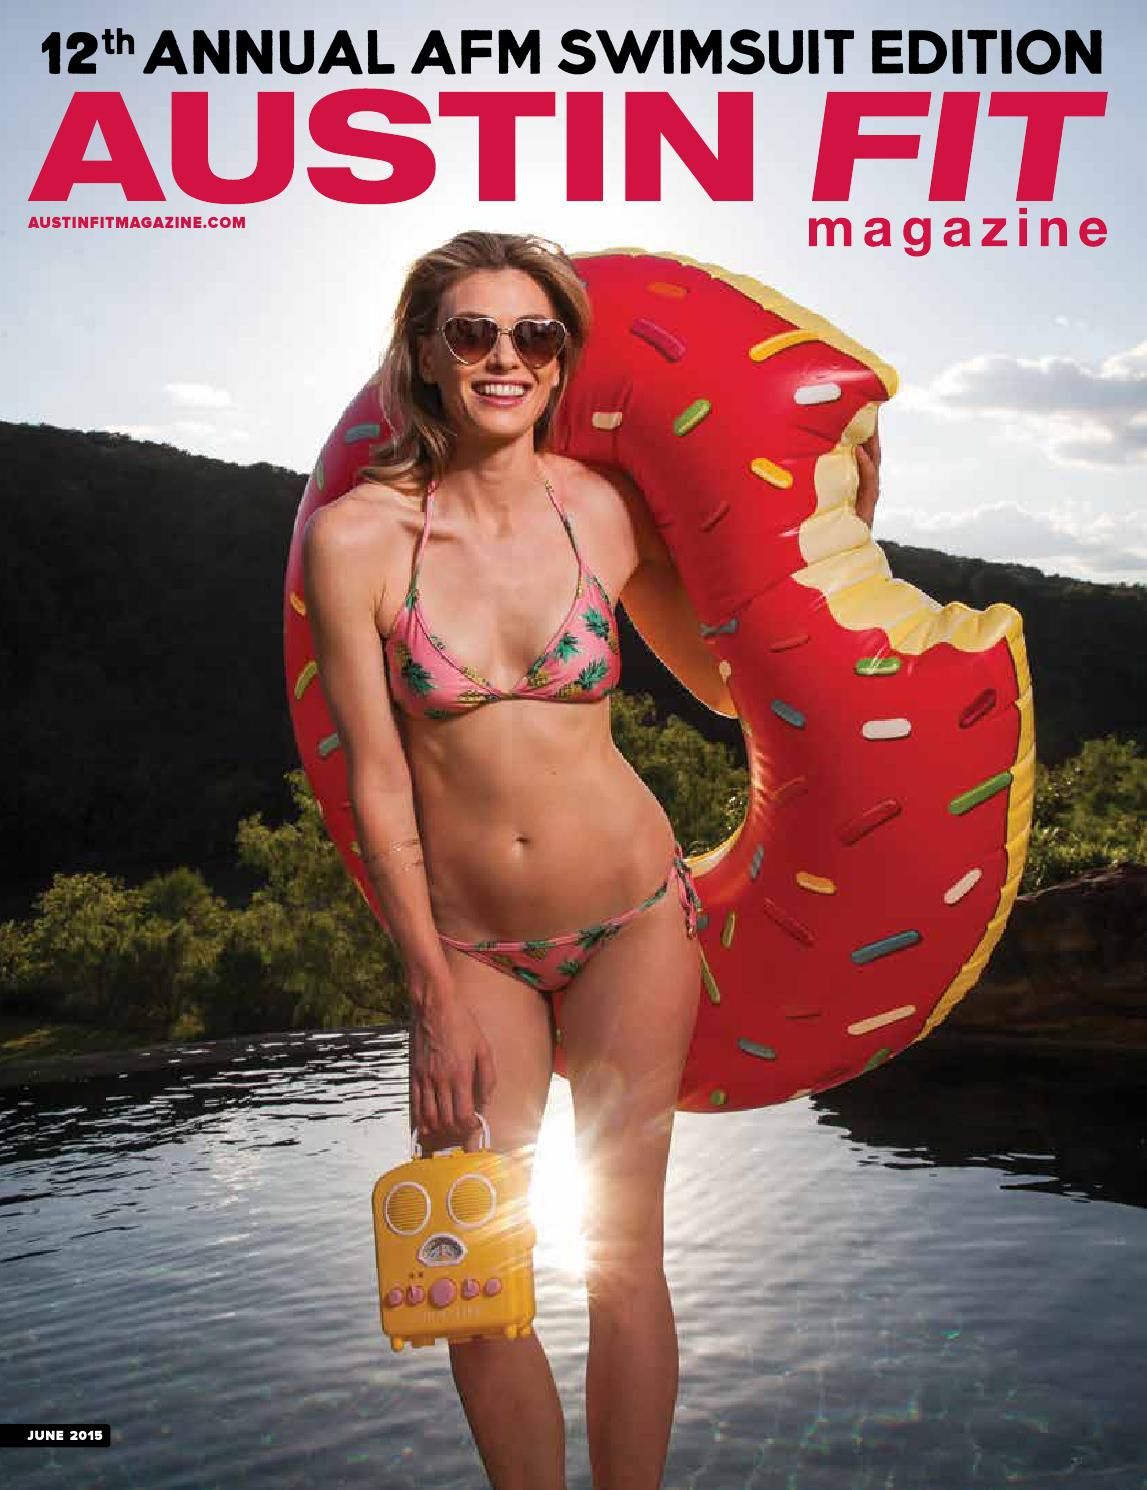 June 2015 - 12th Annual AFM Swimsuit Edition